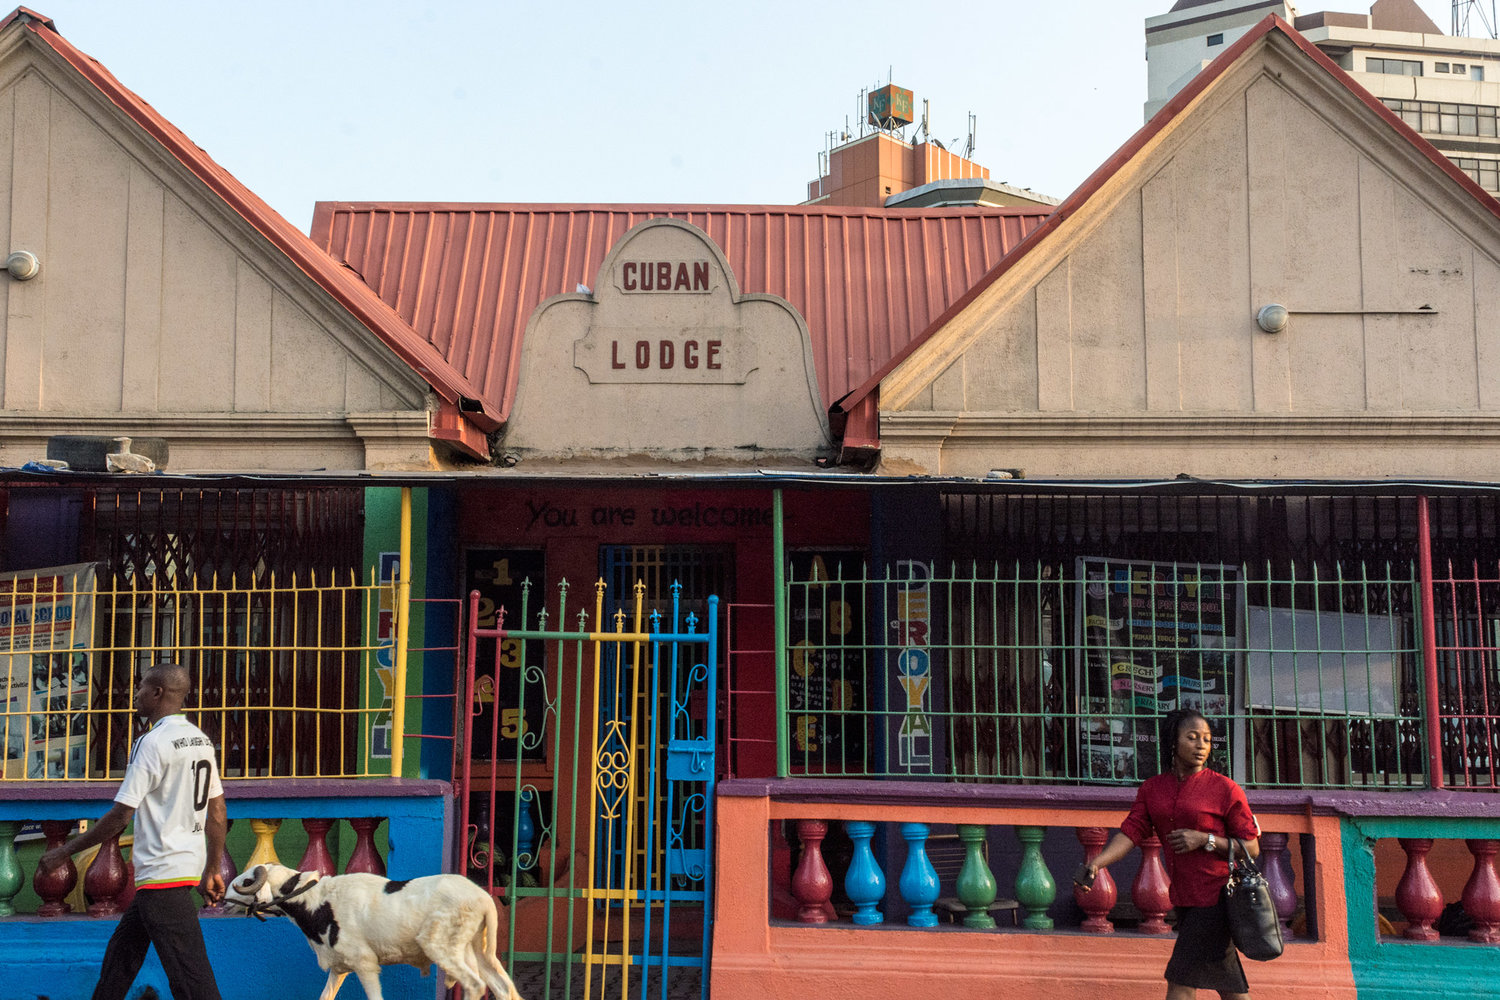 The Cuban Lodge in Lagos, built by Afro-Cuban Hilario Campos, 2016. ©Aderemi Adegbite